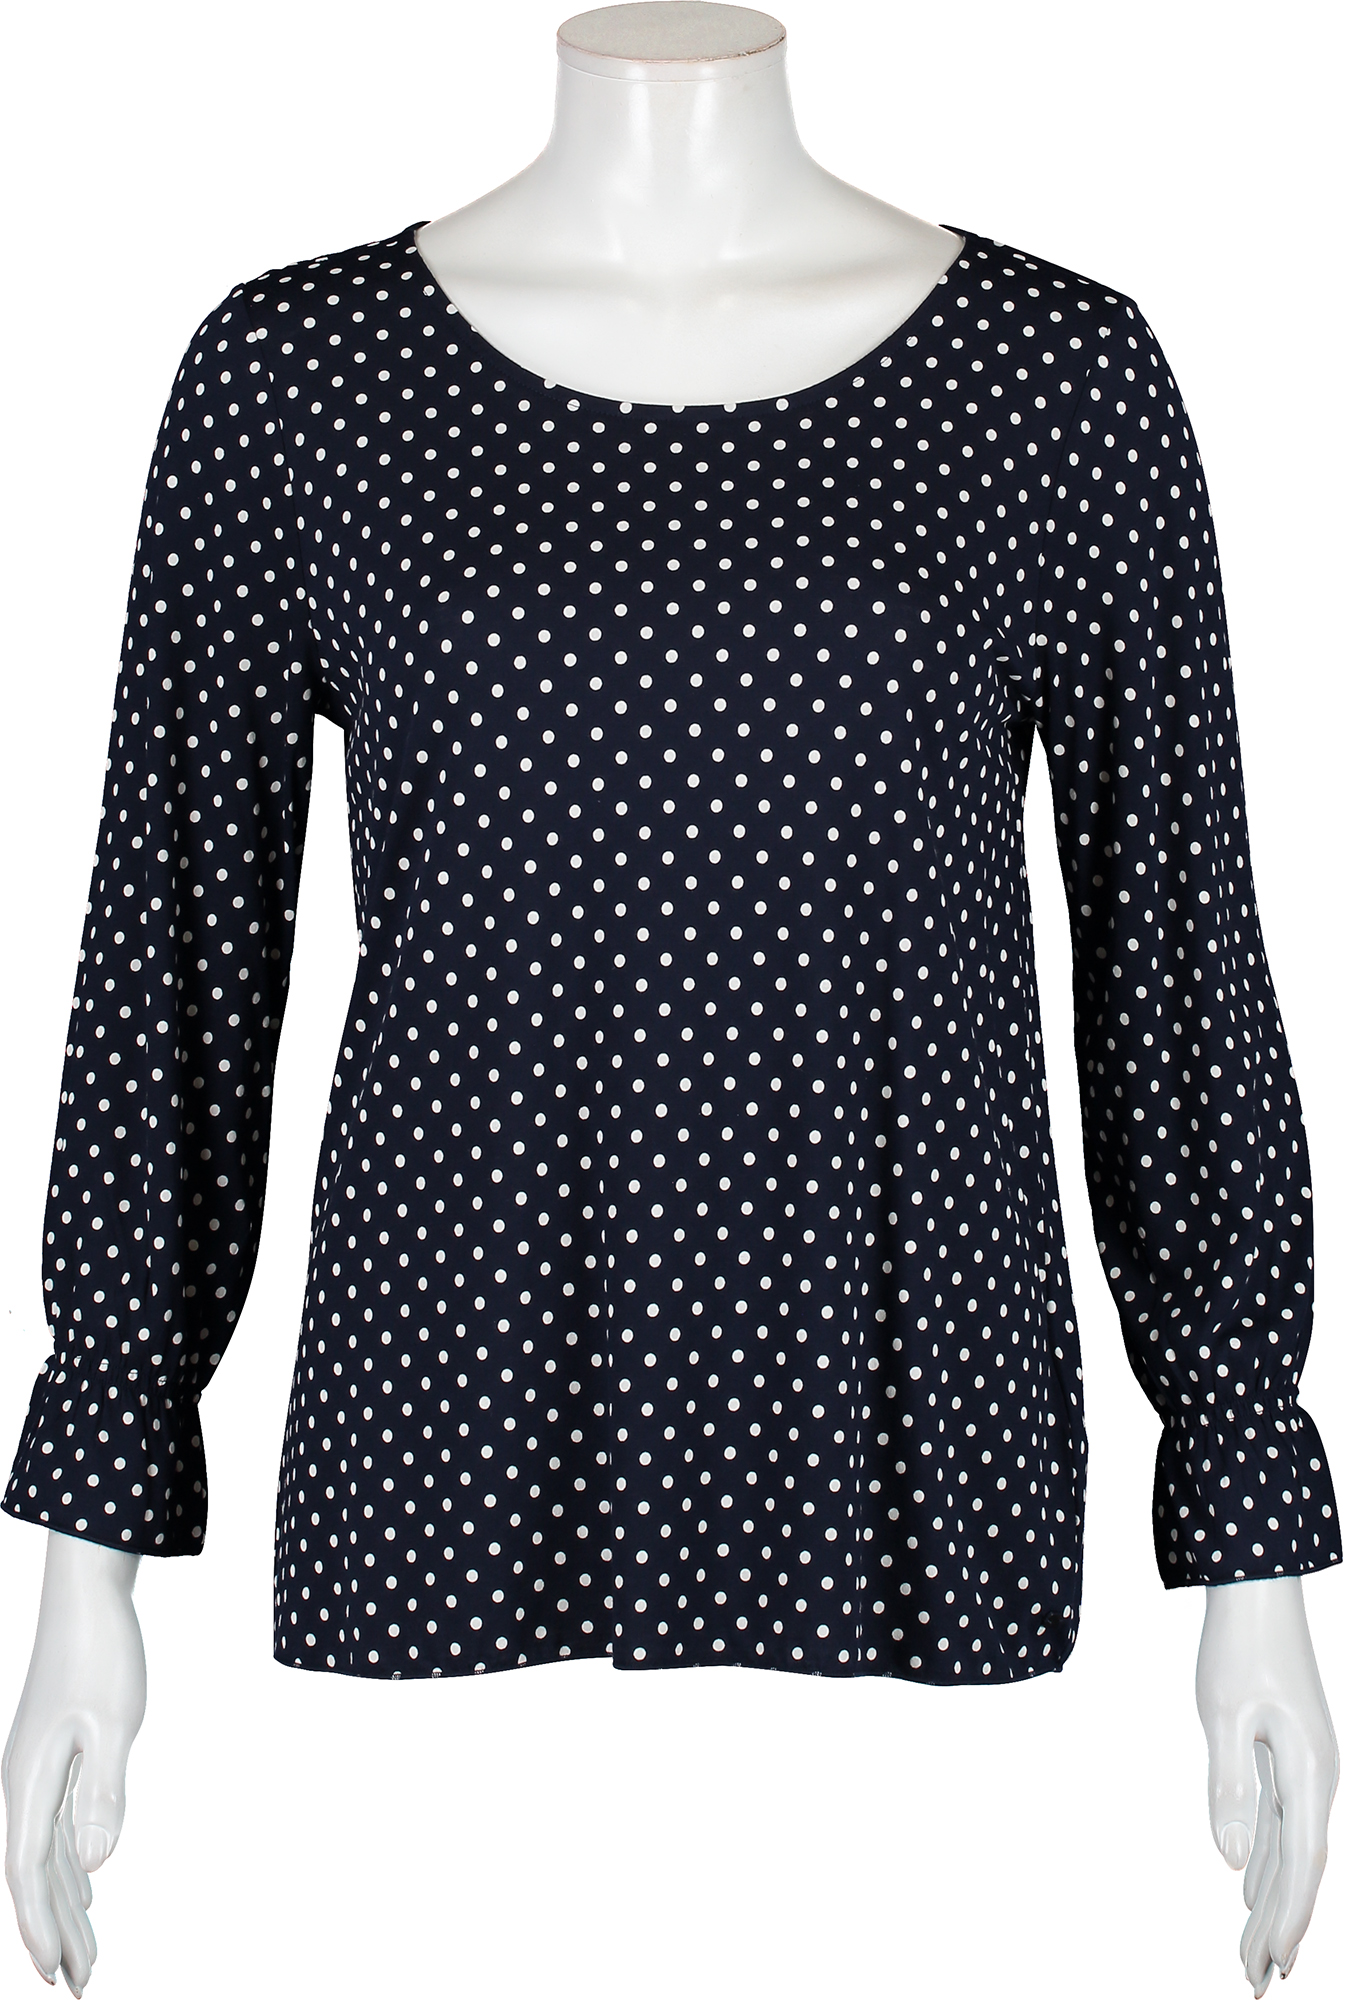 Piet Zoomers Marc OPolo dames blouse